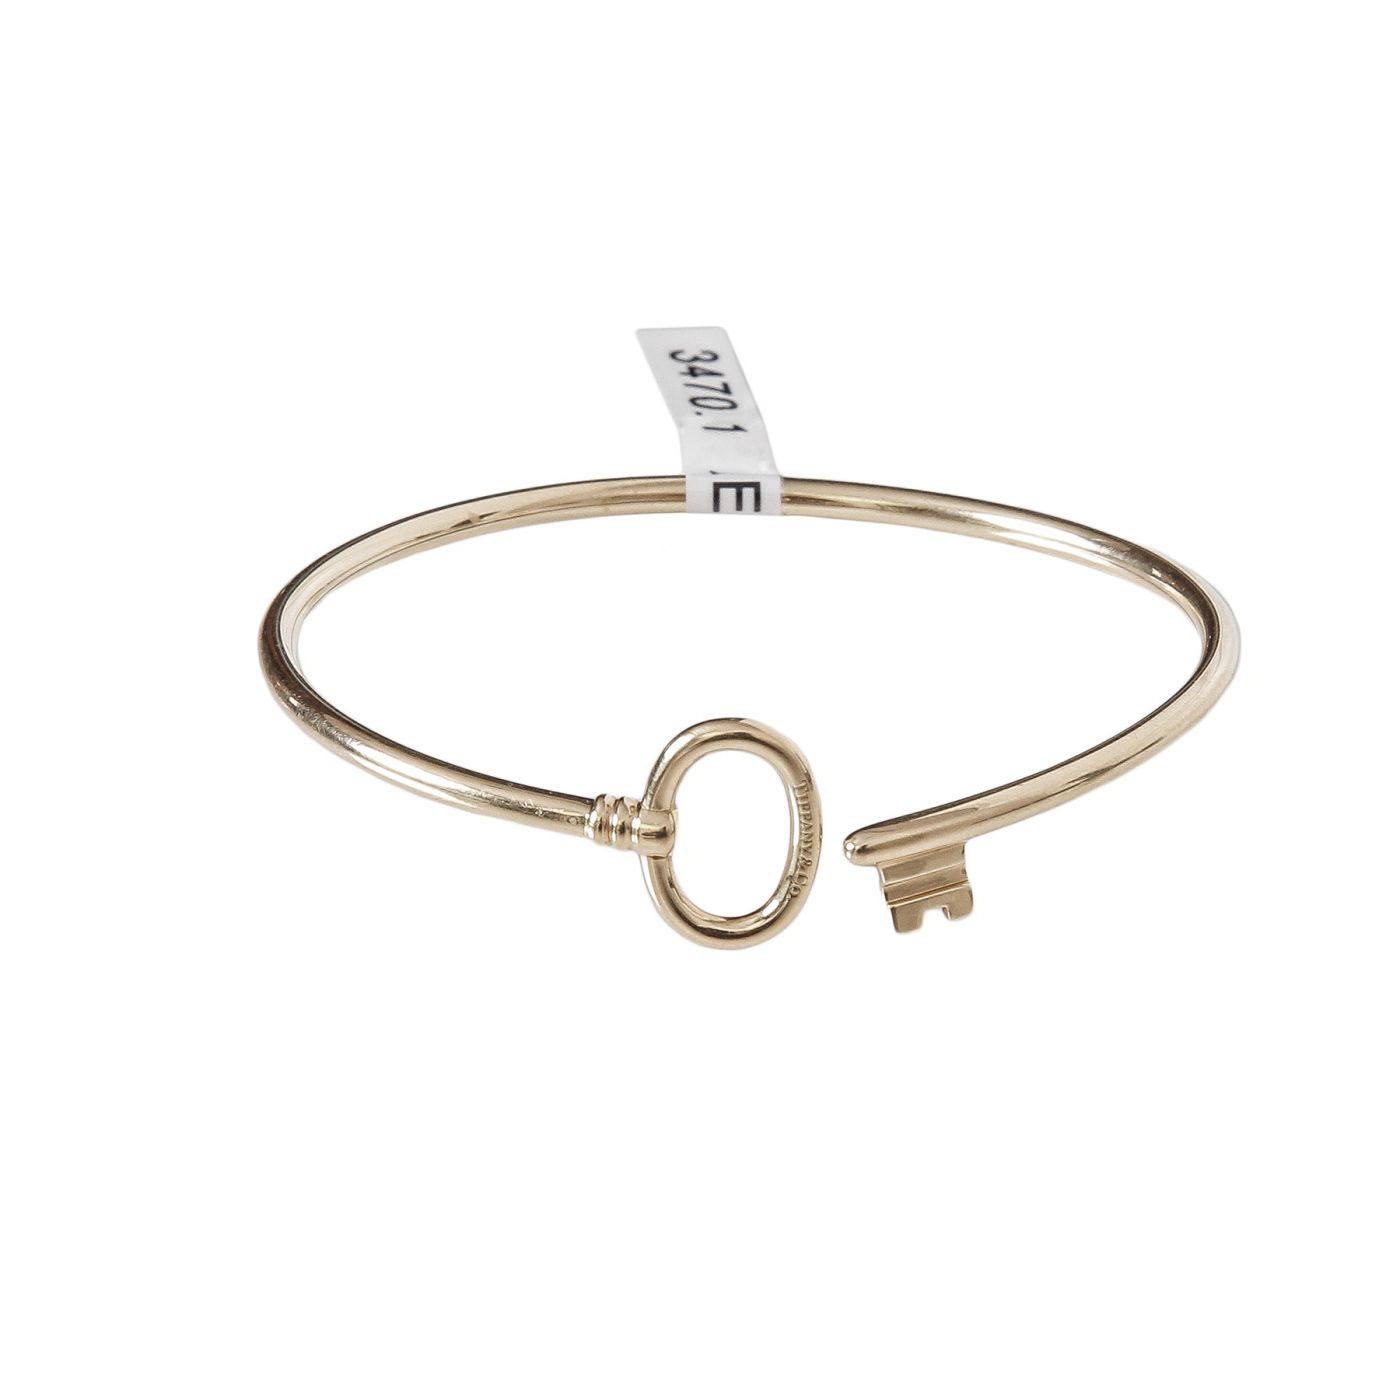 Tiffany & Co. Key Wire 18K Yellow Gold Bracelet